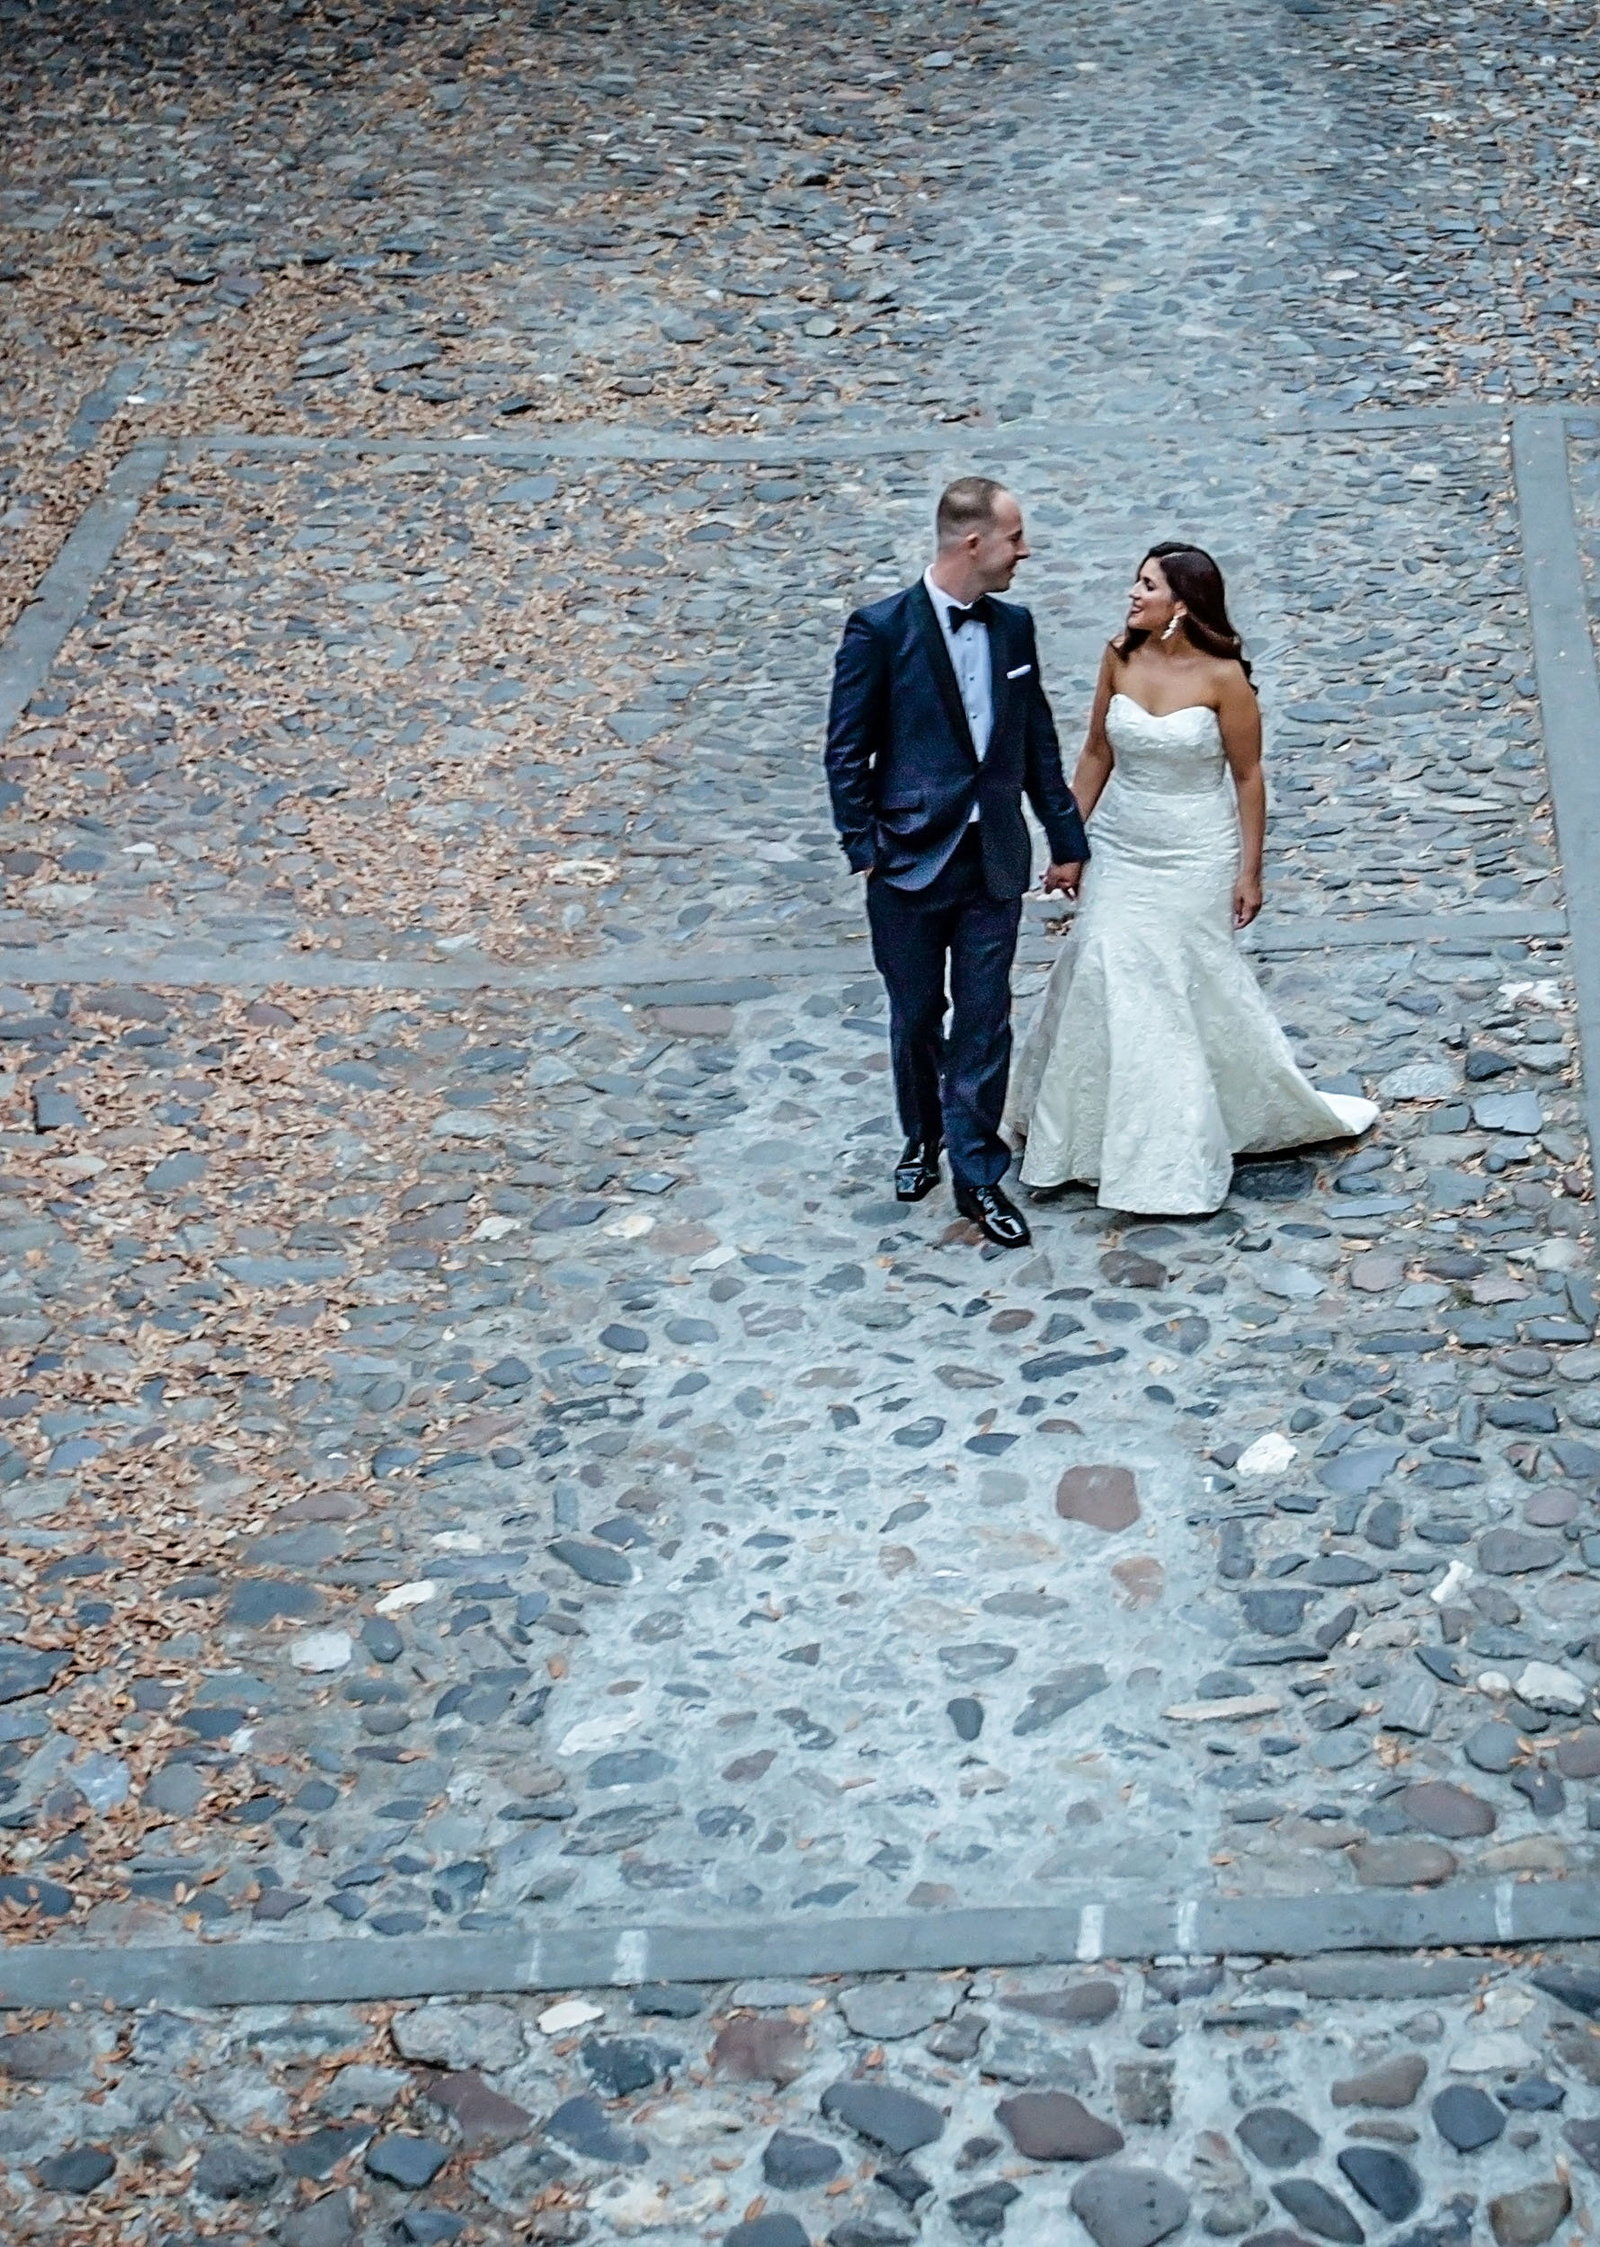 Savannah GA Wedding, Bobbi Brinkman Photography, Tiffany + Josh